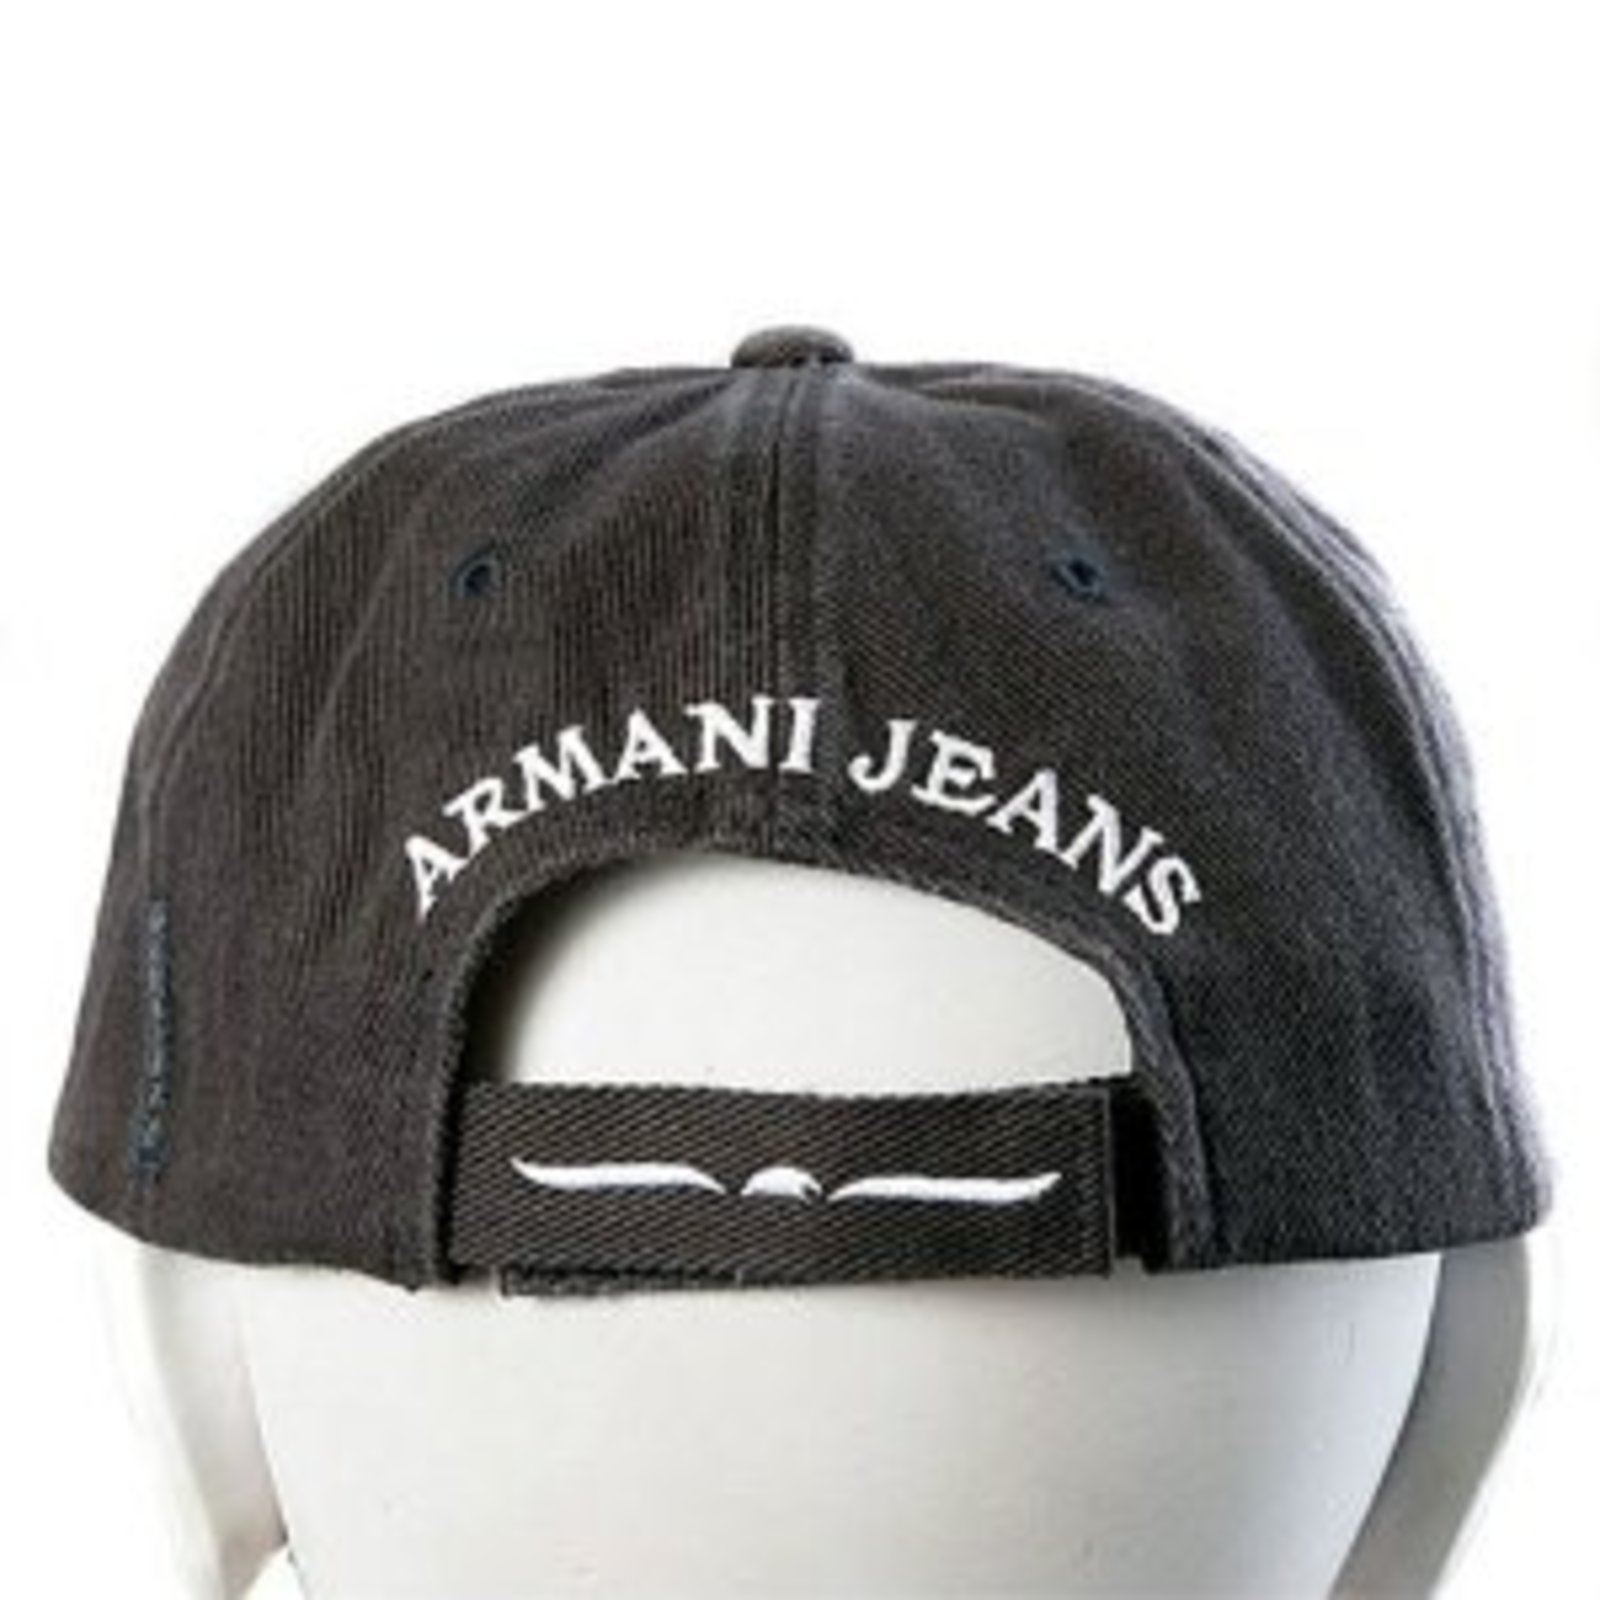 6907d1a2f46 Armani Jeans Cap 0648OXE Navy cap AJM7515 at Togged Clothing